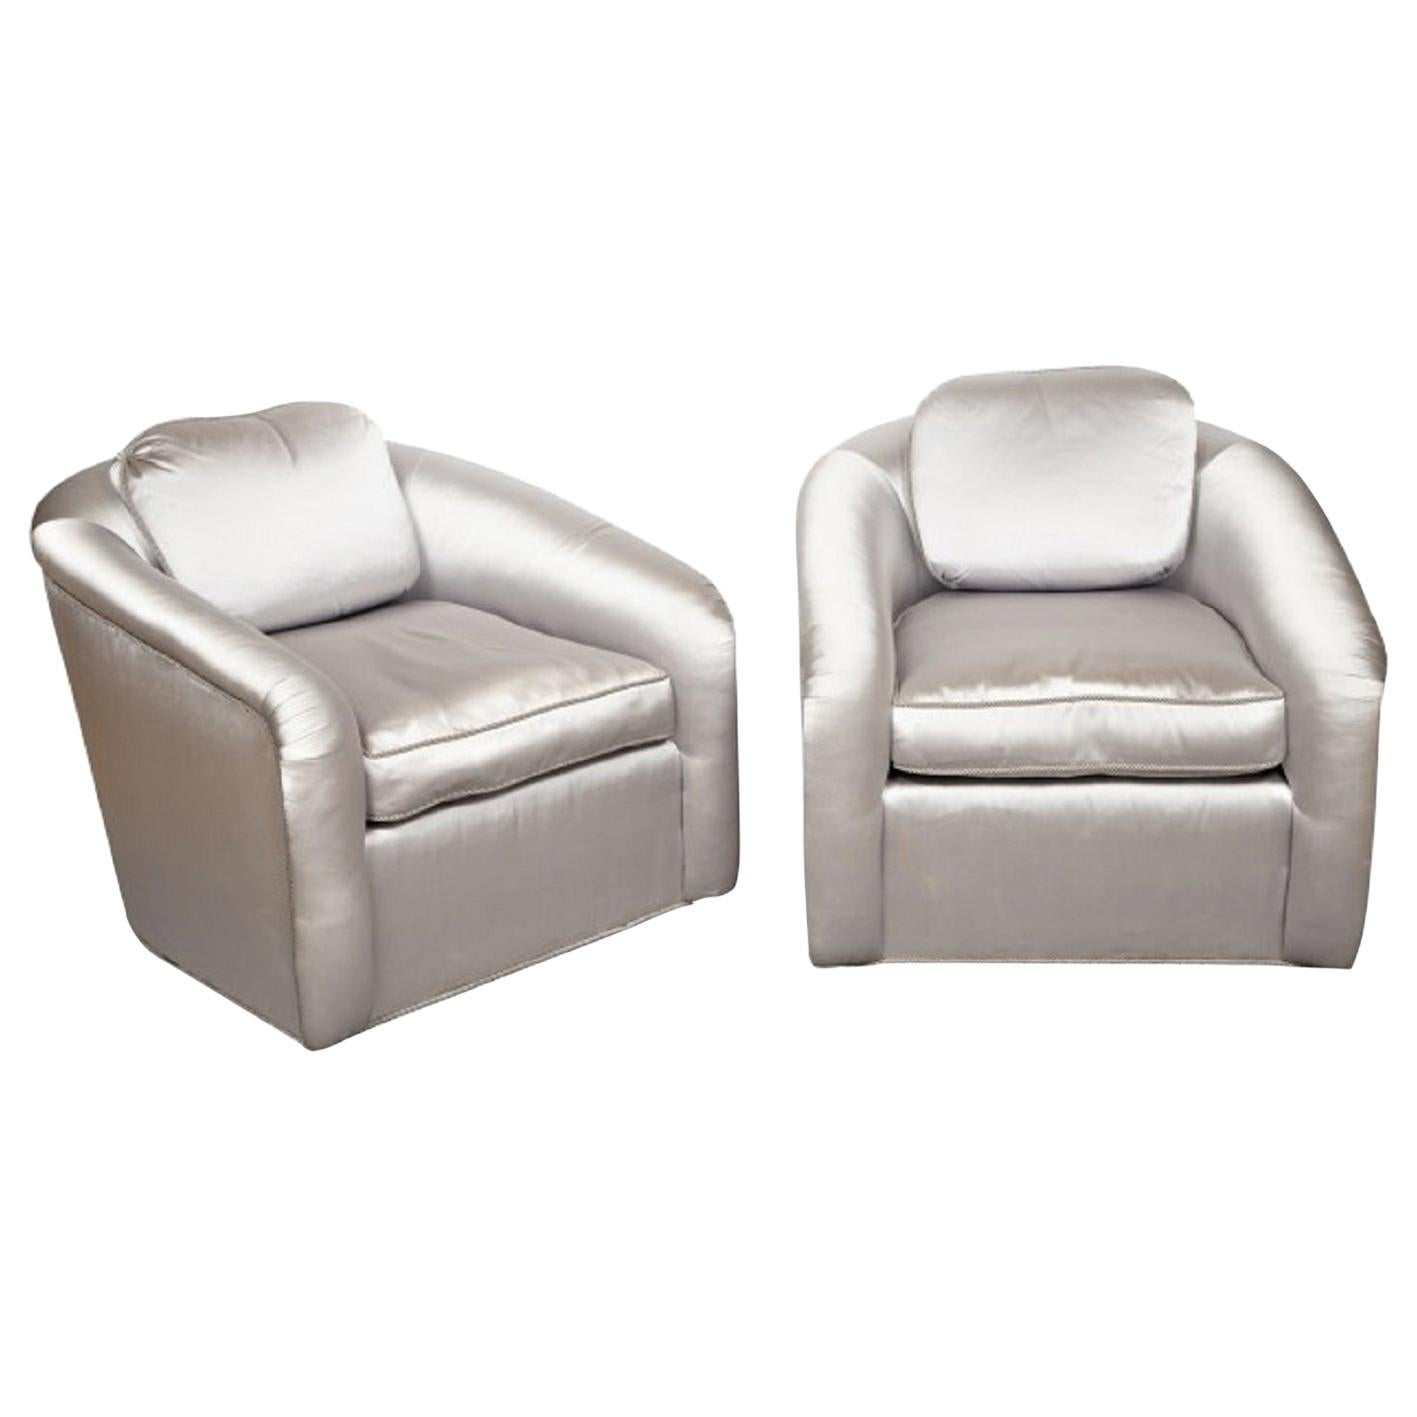 Pair of 1950s Silk Upholstered Lounge Chairs